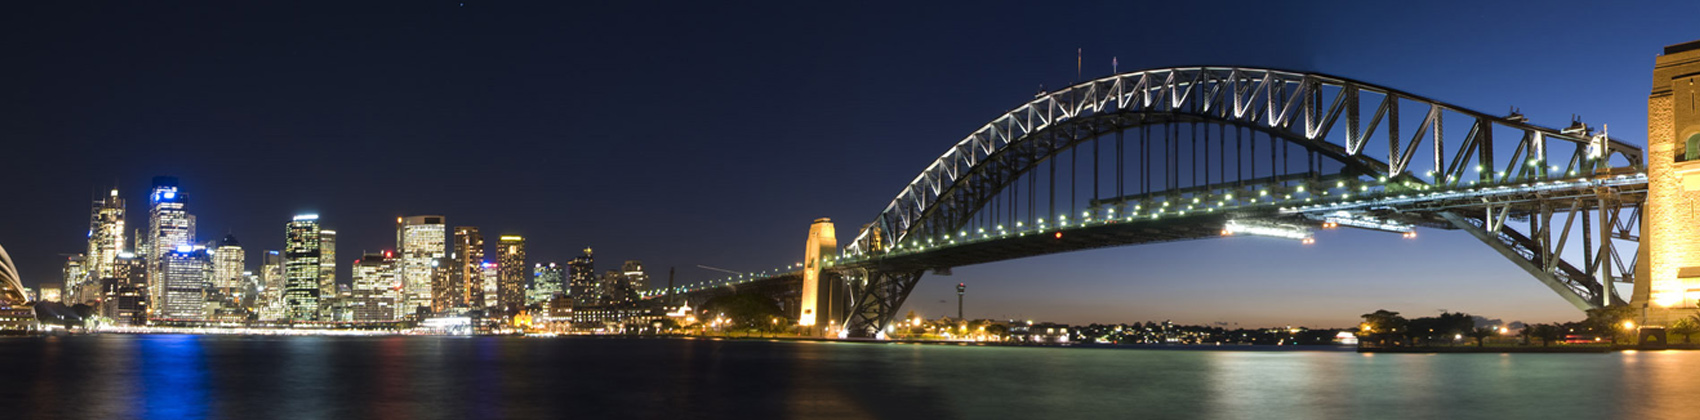 Travel Packages: Australia